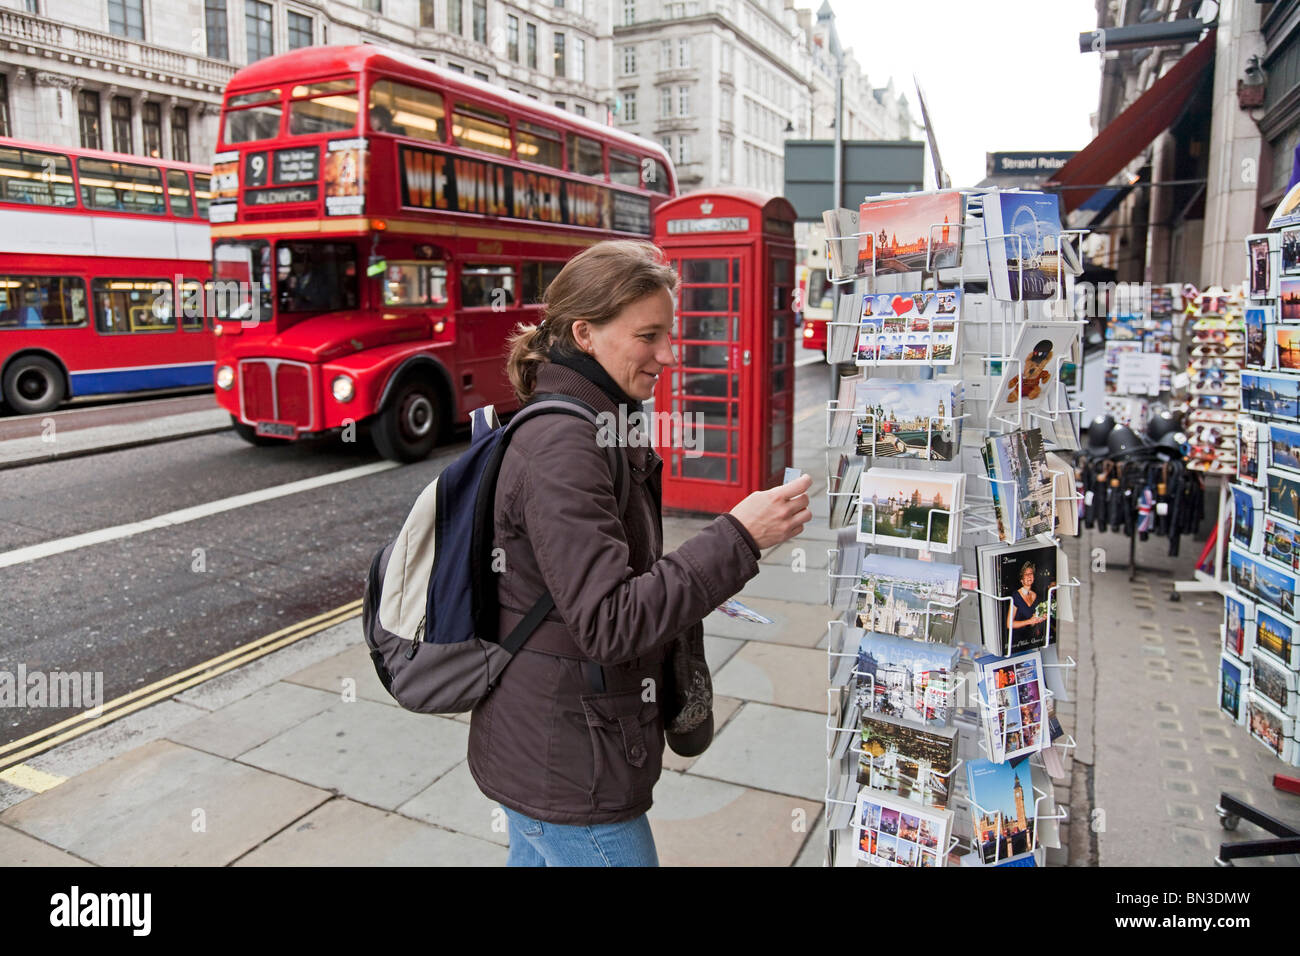 Tourist byuing postcards in London - Stock Image